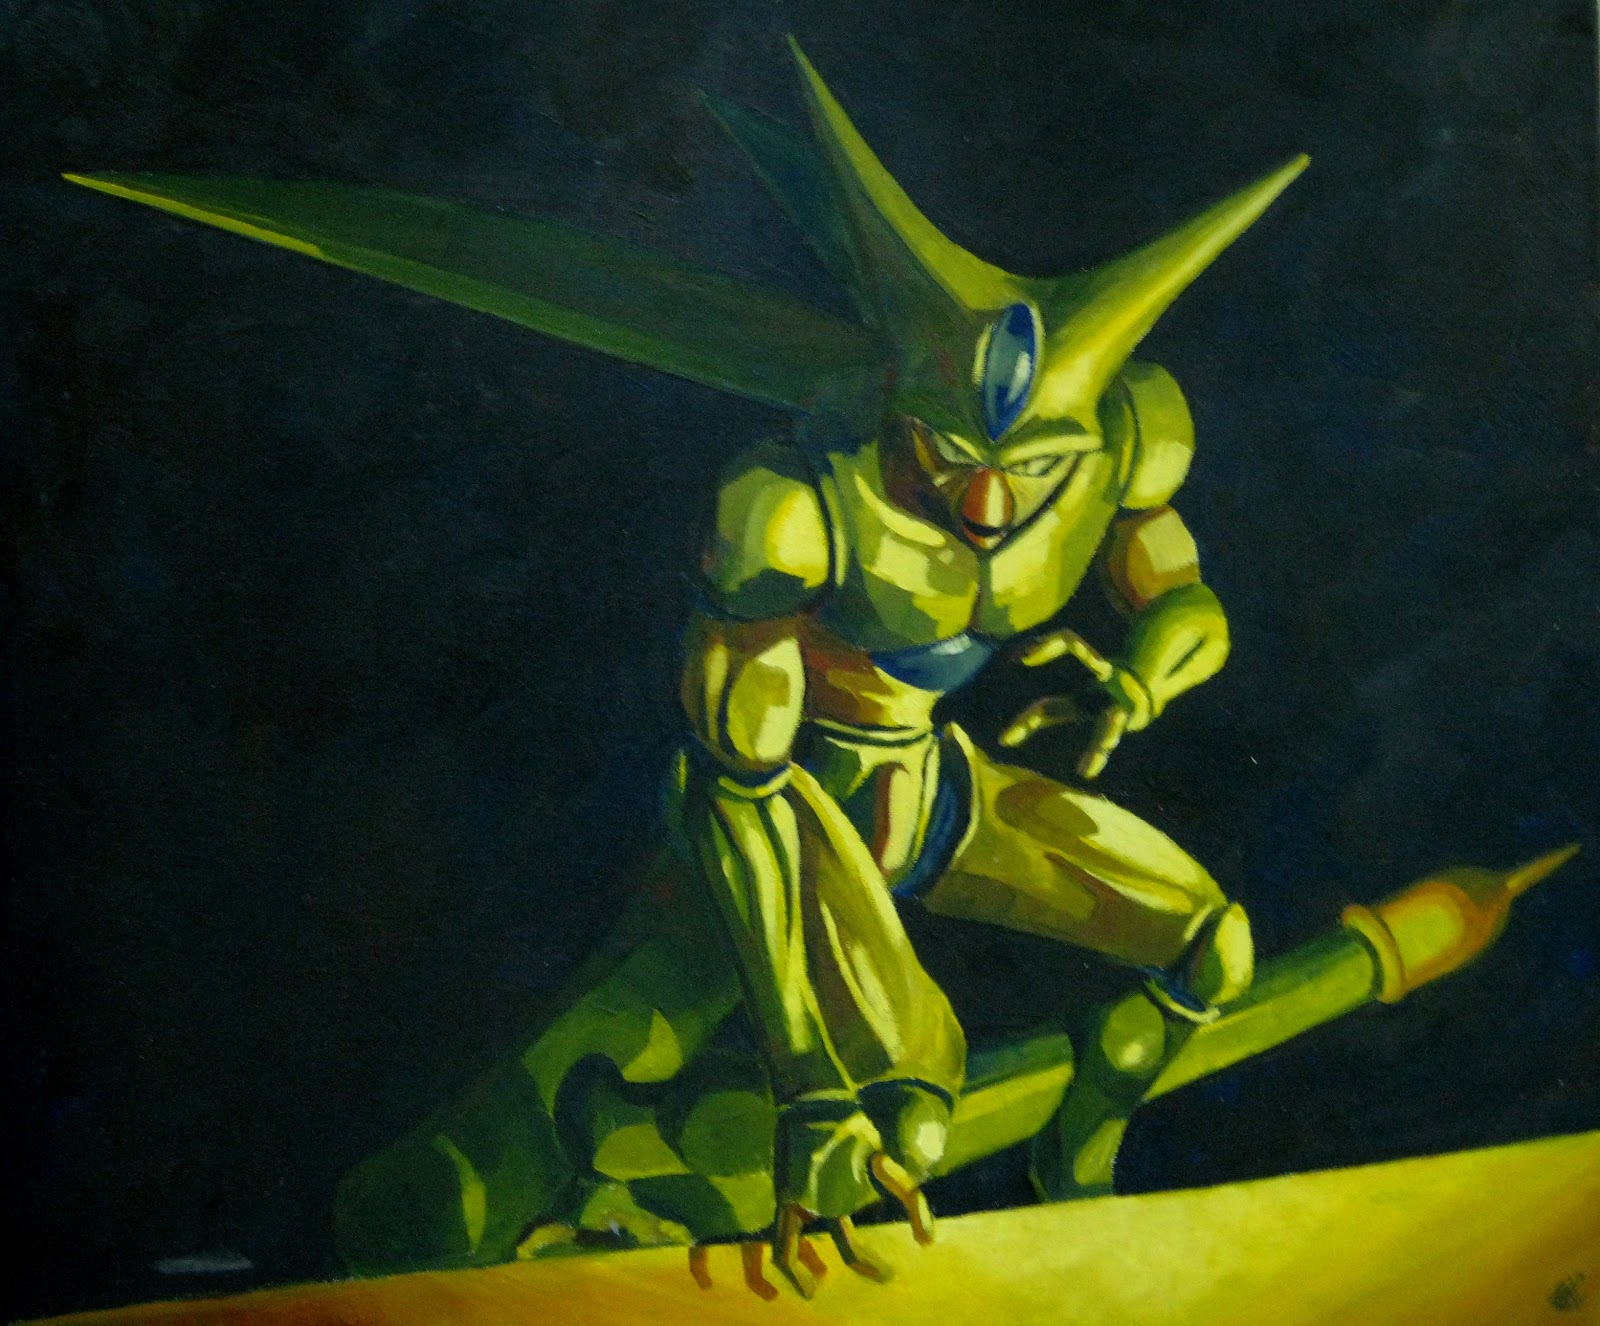 DRAGON BALL Z WALLPAPERS Imperfect cell 1600x1326